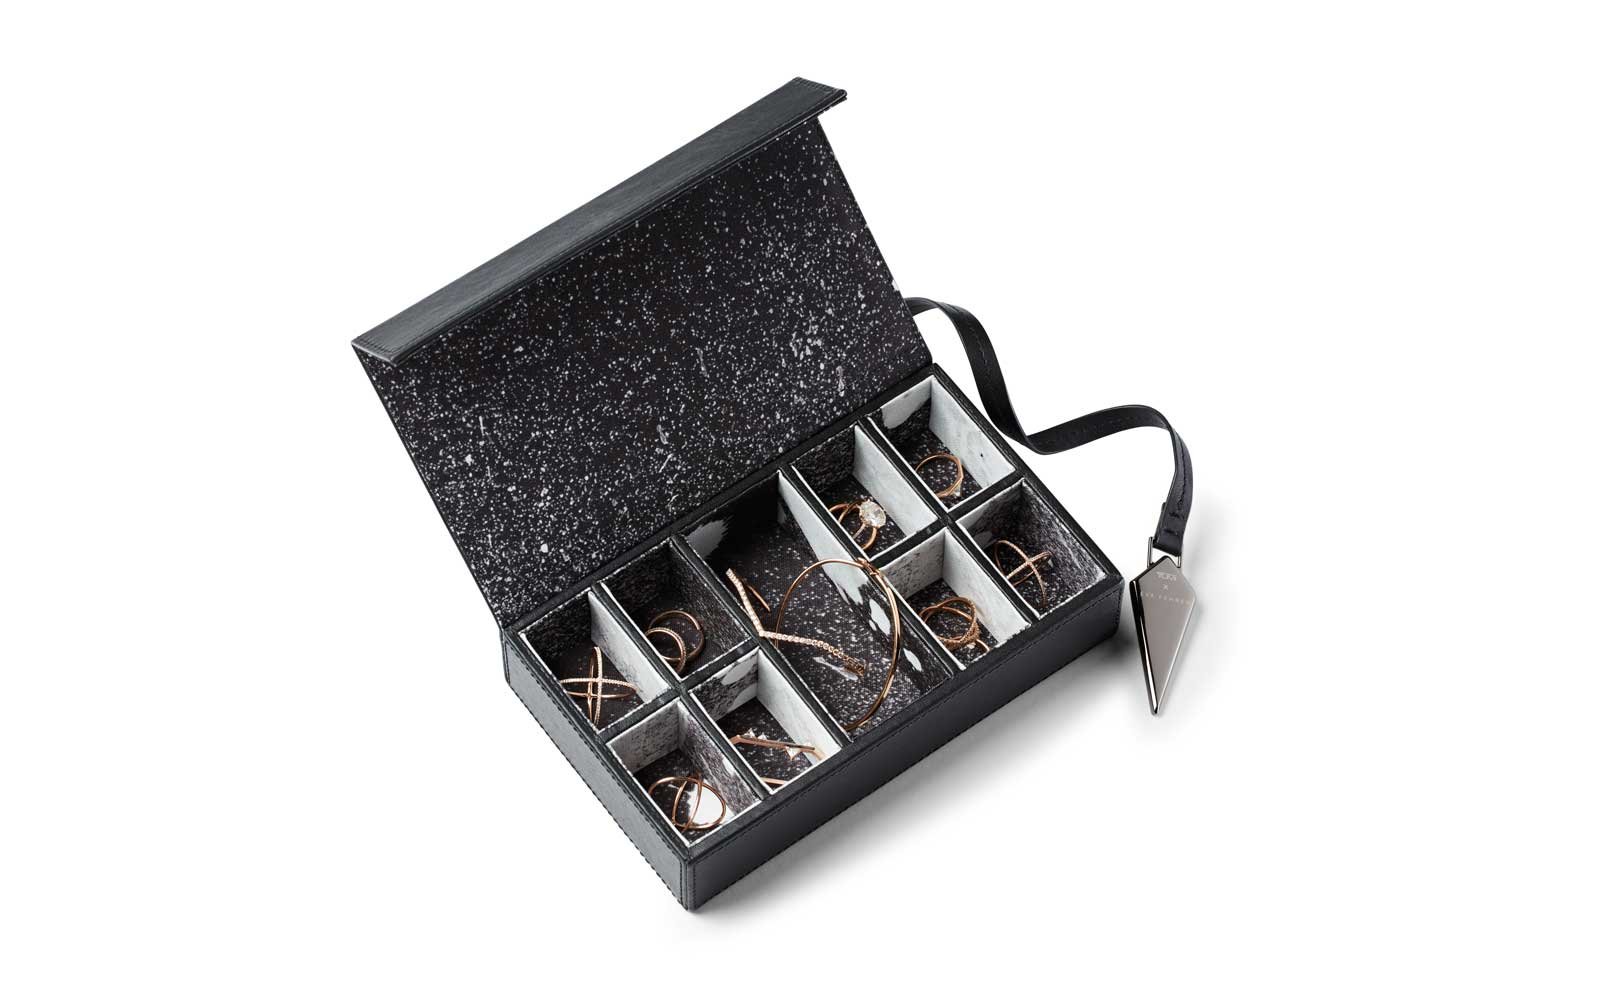 Black Jewlery Box from Eva Fehren and Tumi